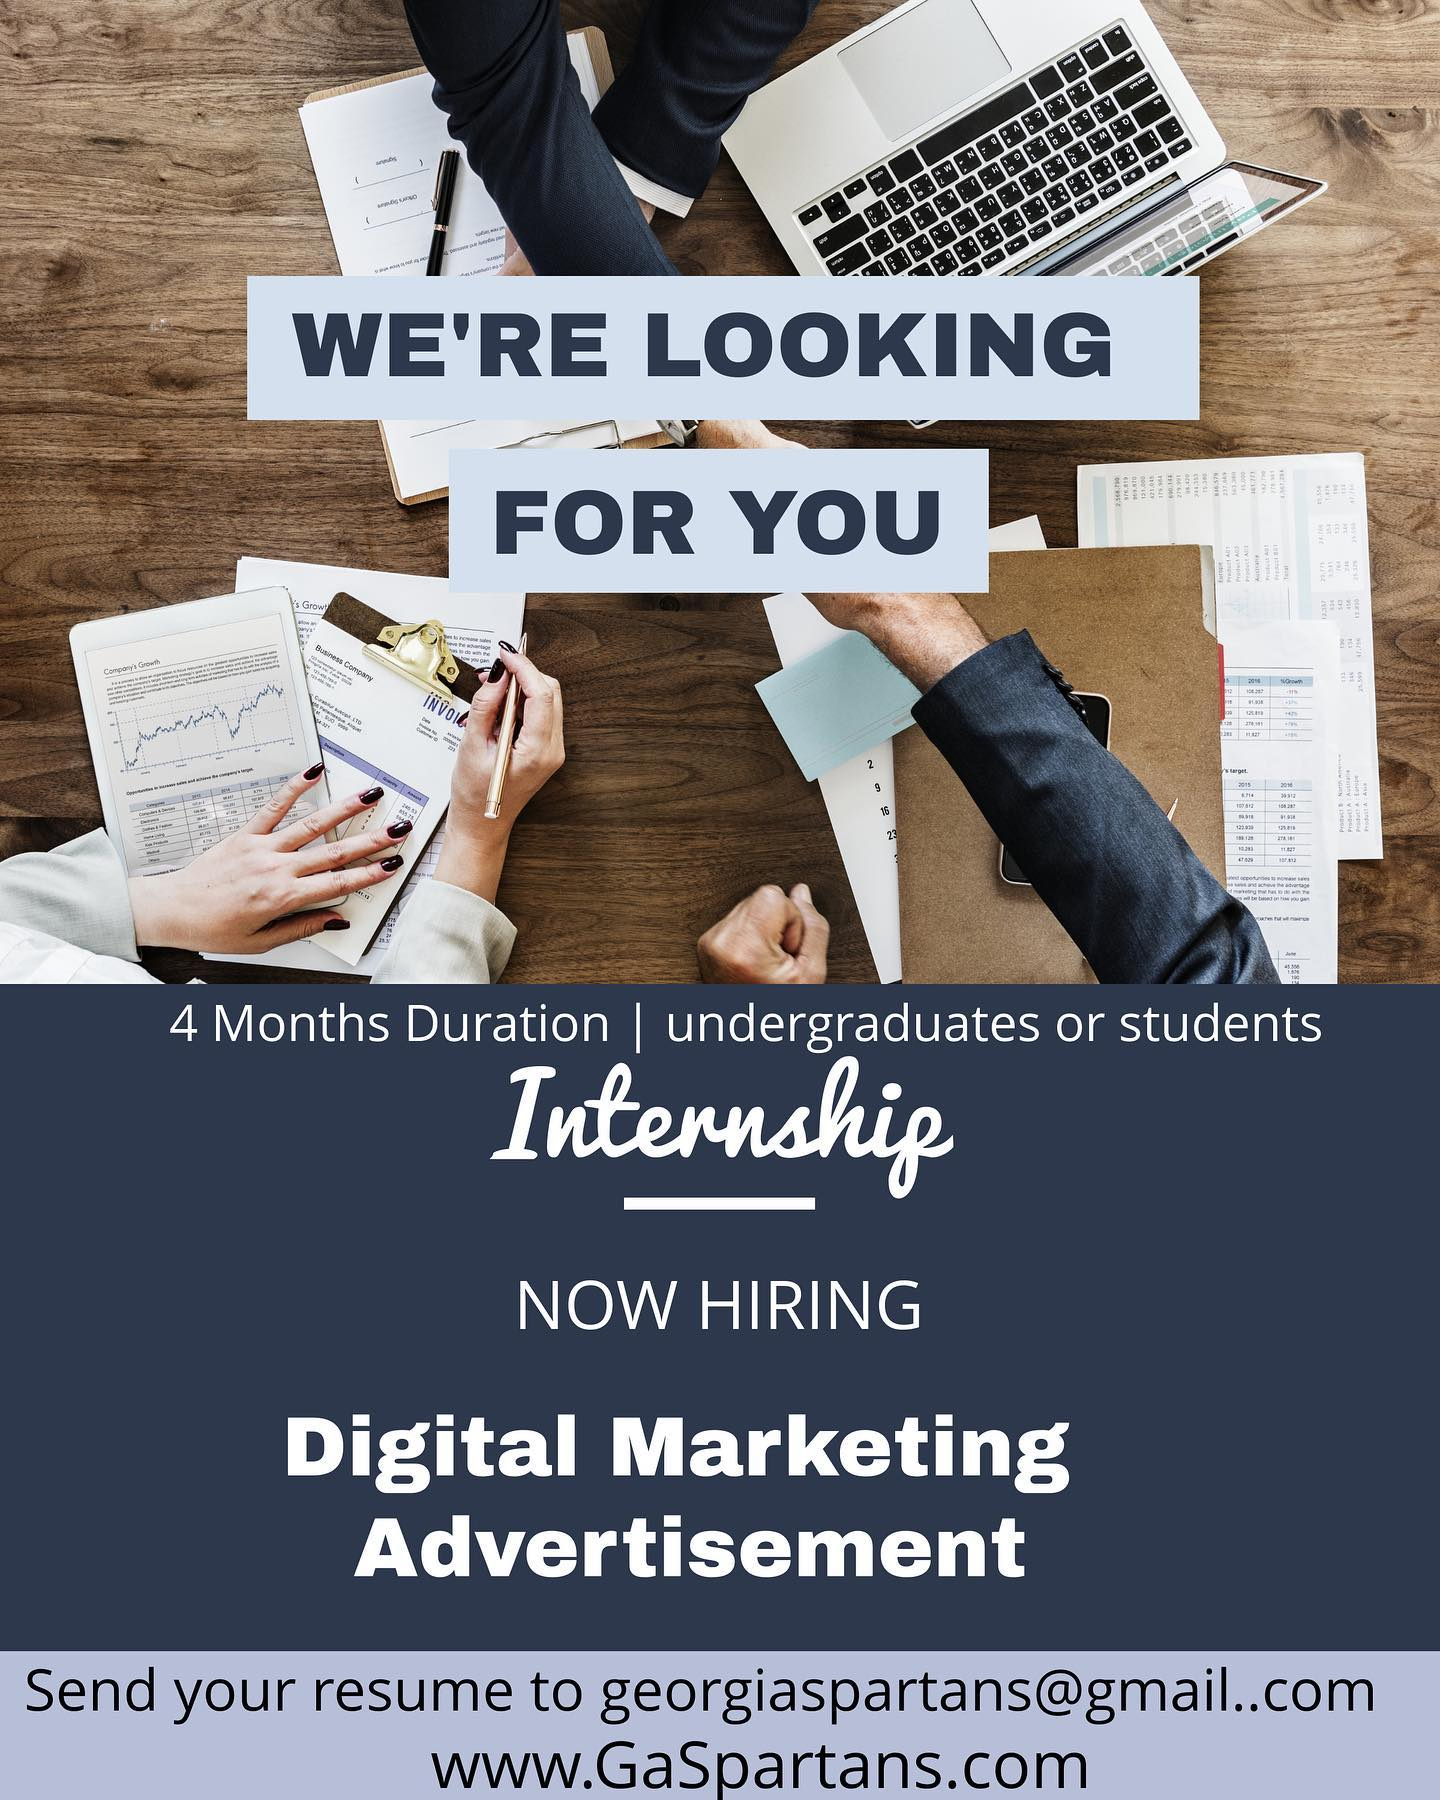 We looking for interns for our upcoming season from Jan 9 thru April 3rd. We need a digital marketing and advertisements expert f